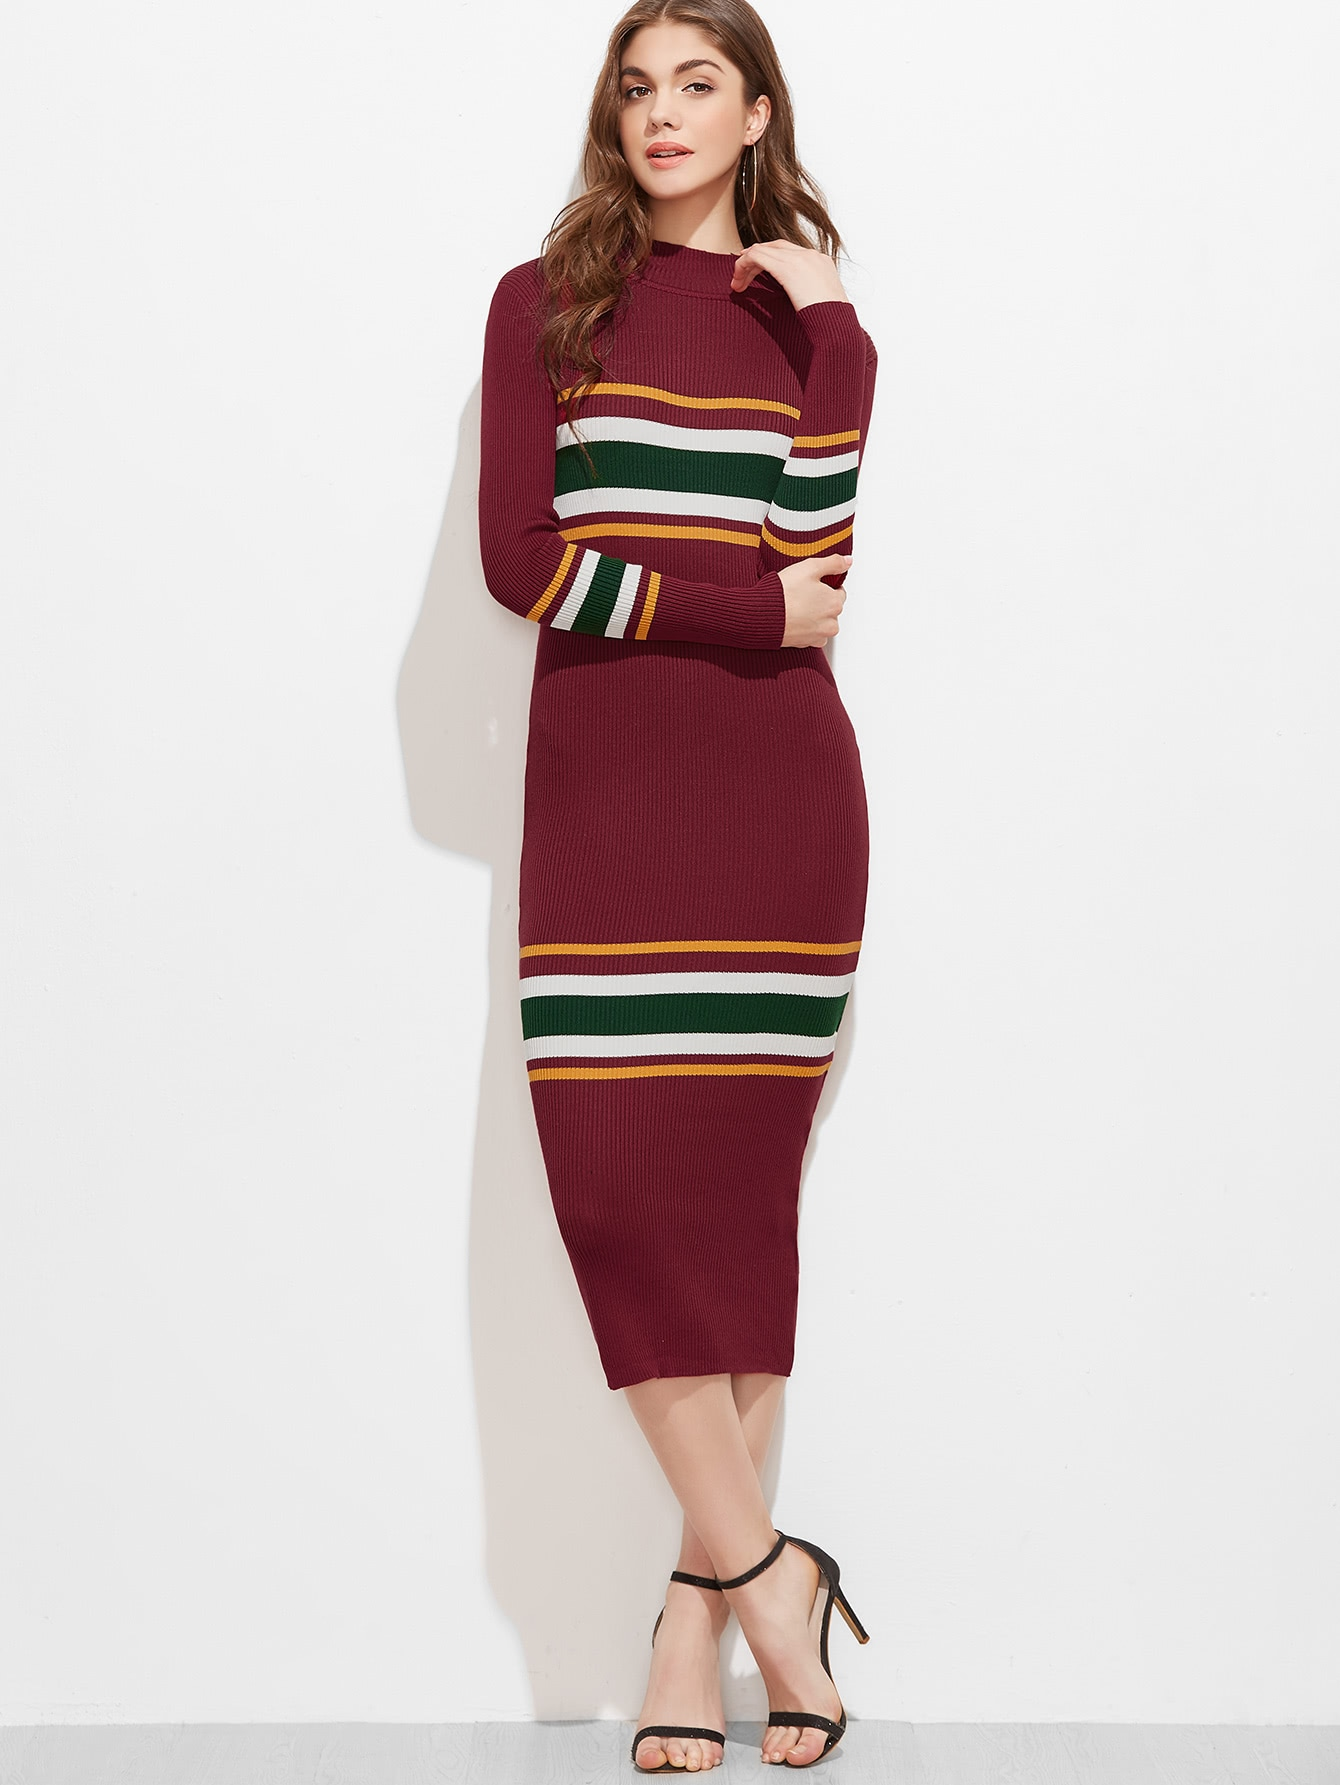 Burgundy Striped Ribbed Sweater DressBurgundy Striped Ribbed Sweater Dress<br><br>color: Burgundy<br>size: one-size